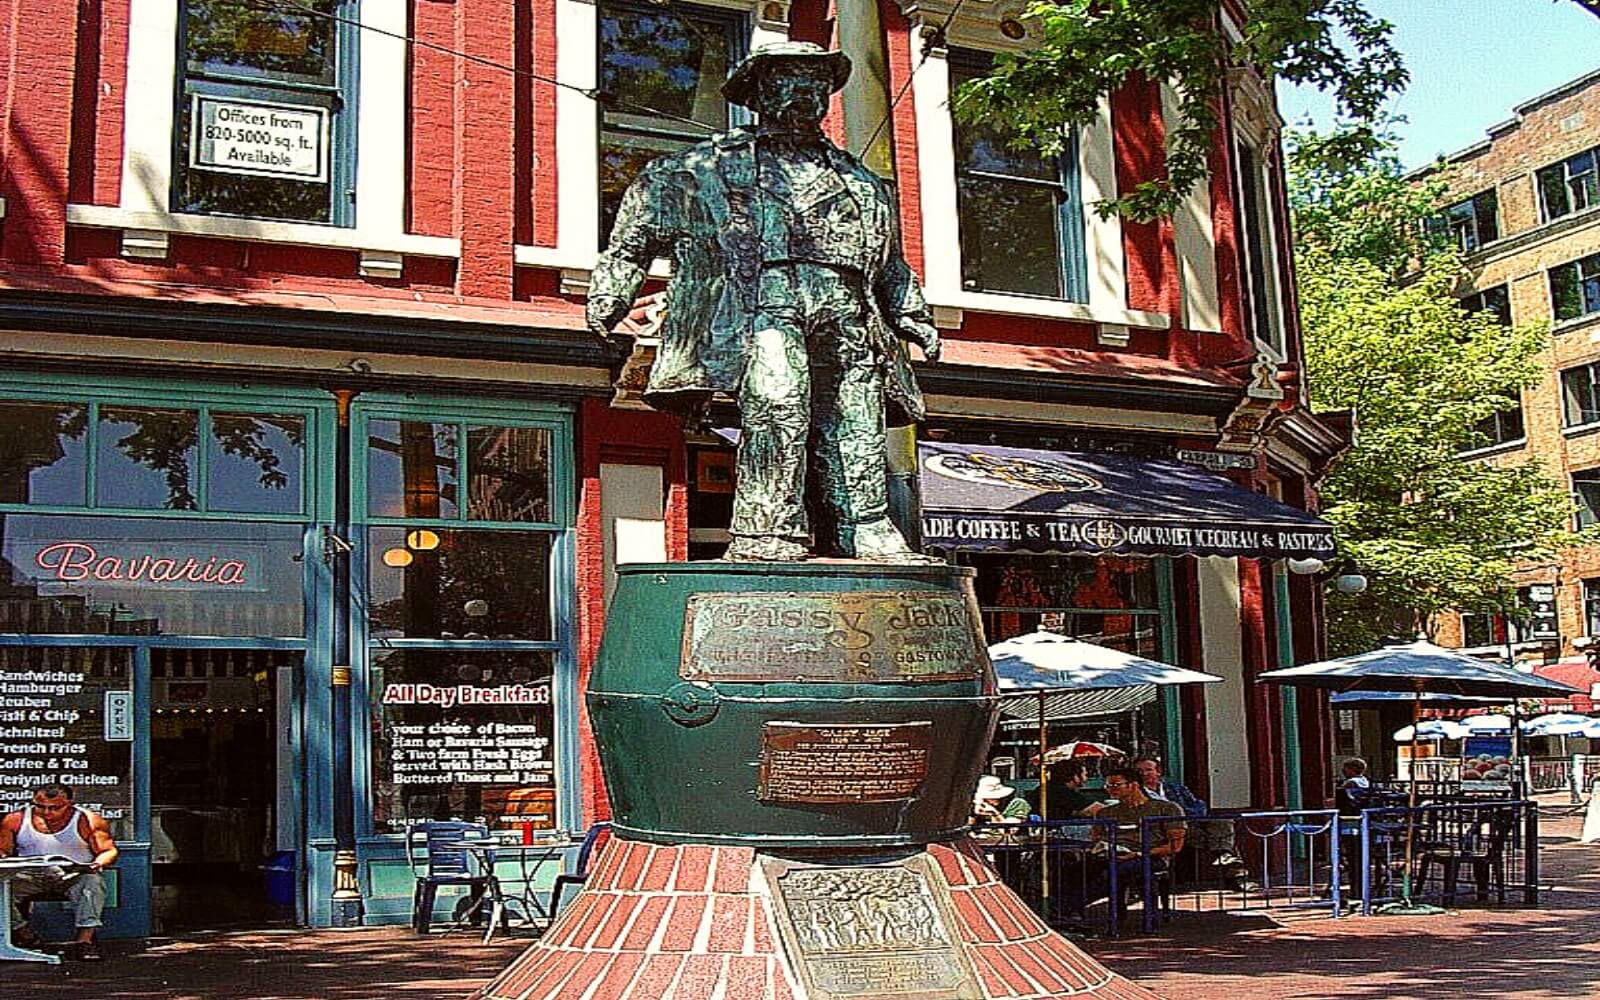 The Gassy Jack Statue in maple Tree Square